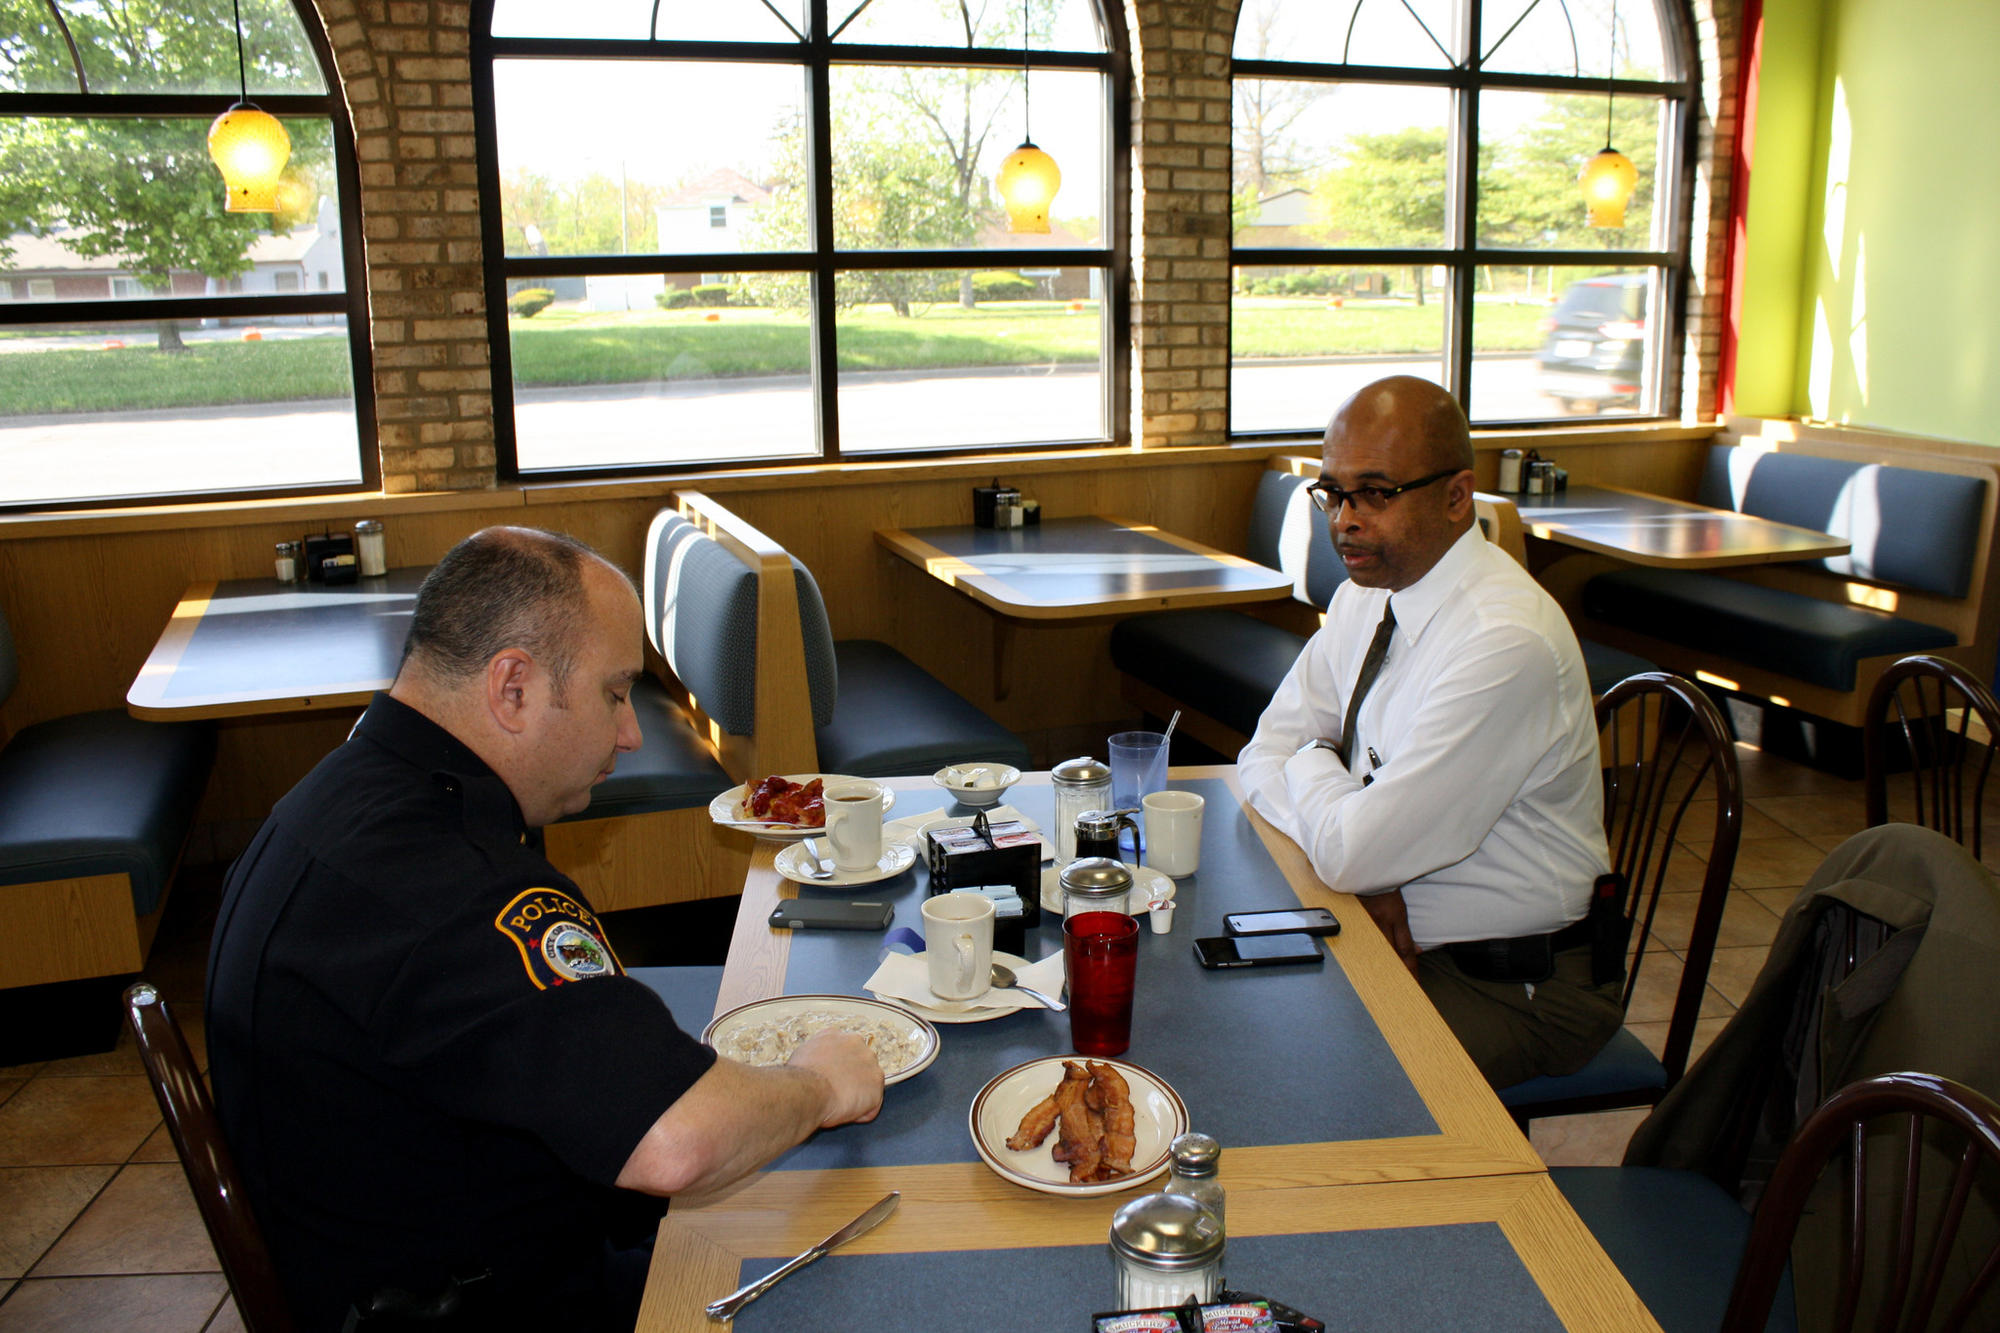 Riley eats at Applewood Coney Island, a local diner, with Lt. Jeff Twardzik, who oversees patrol operations in Inkster.